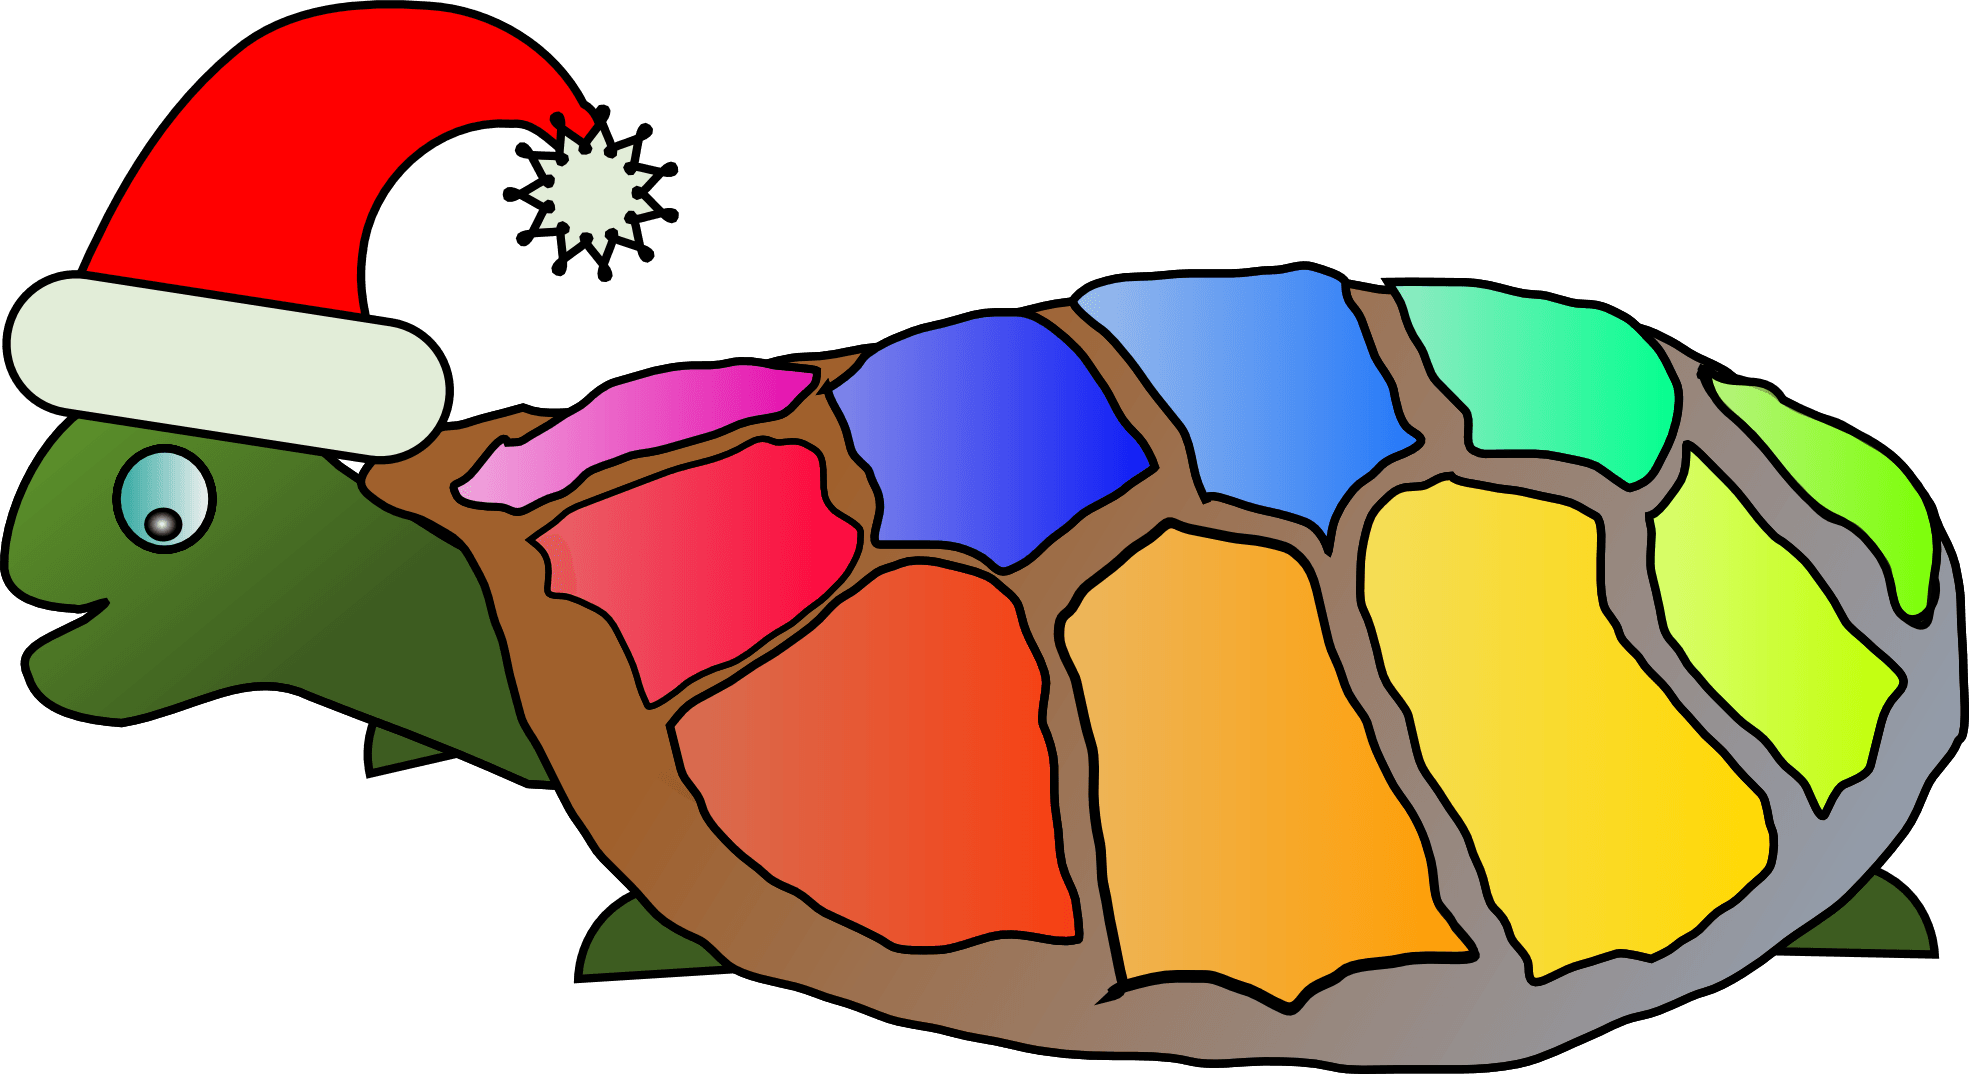 Free Christmas Turtle Cliparts, Download Free Clip Art, Free.